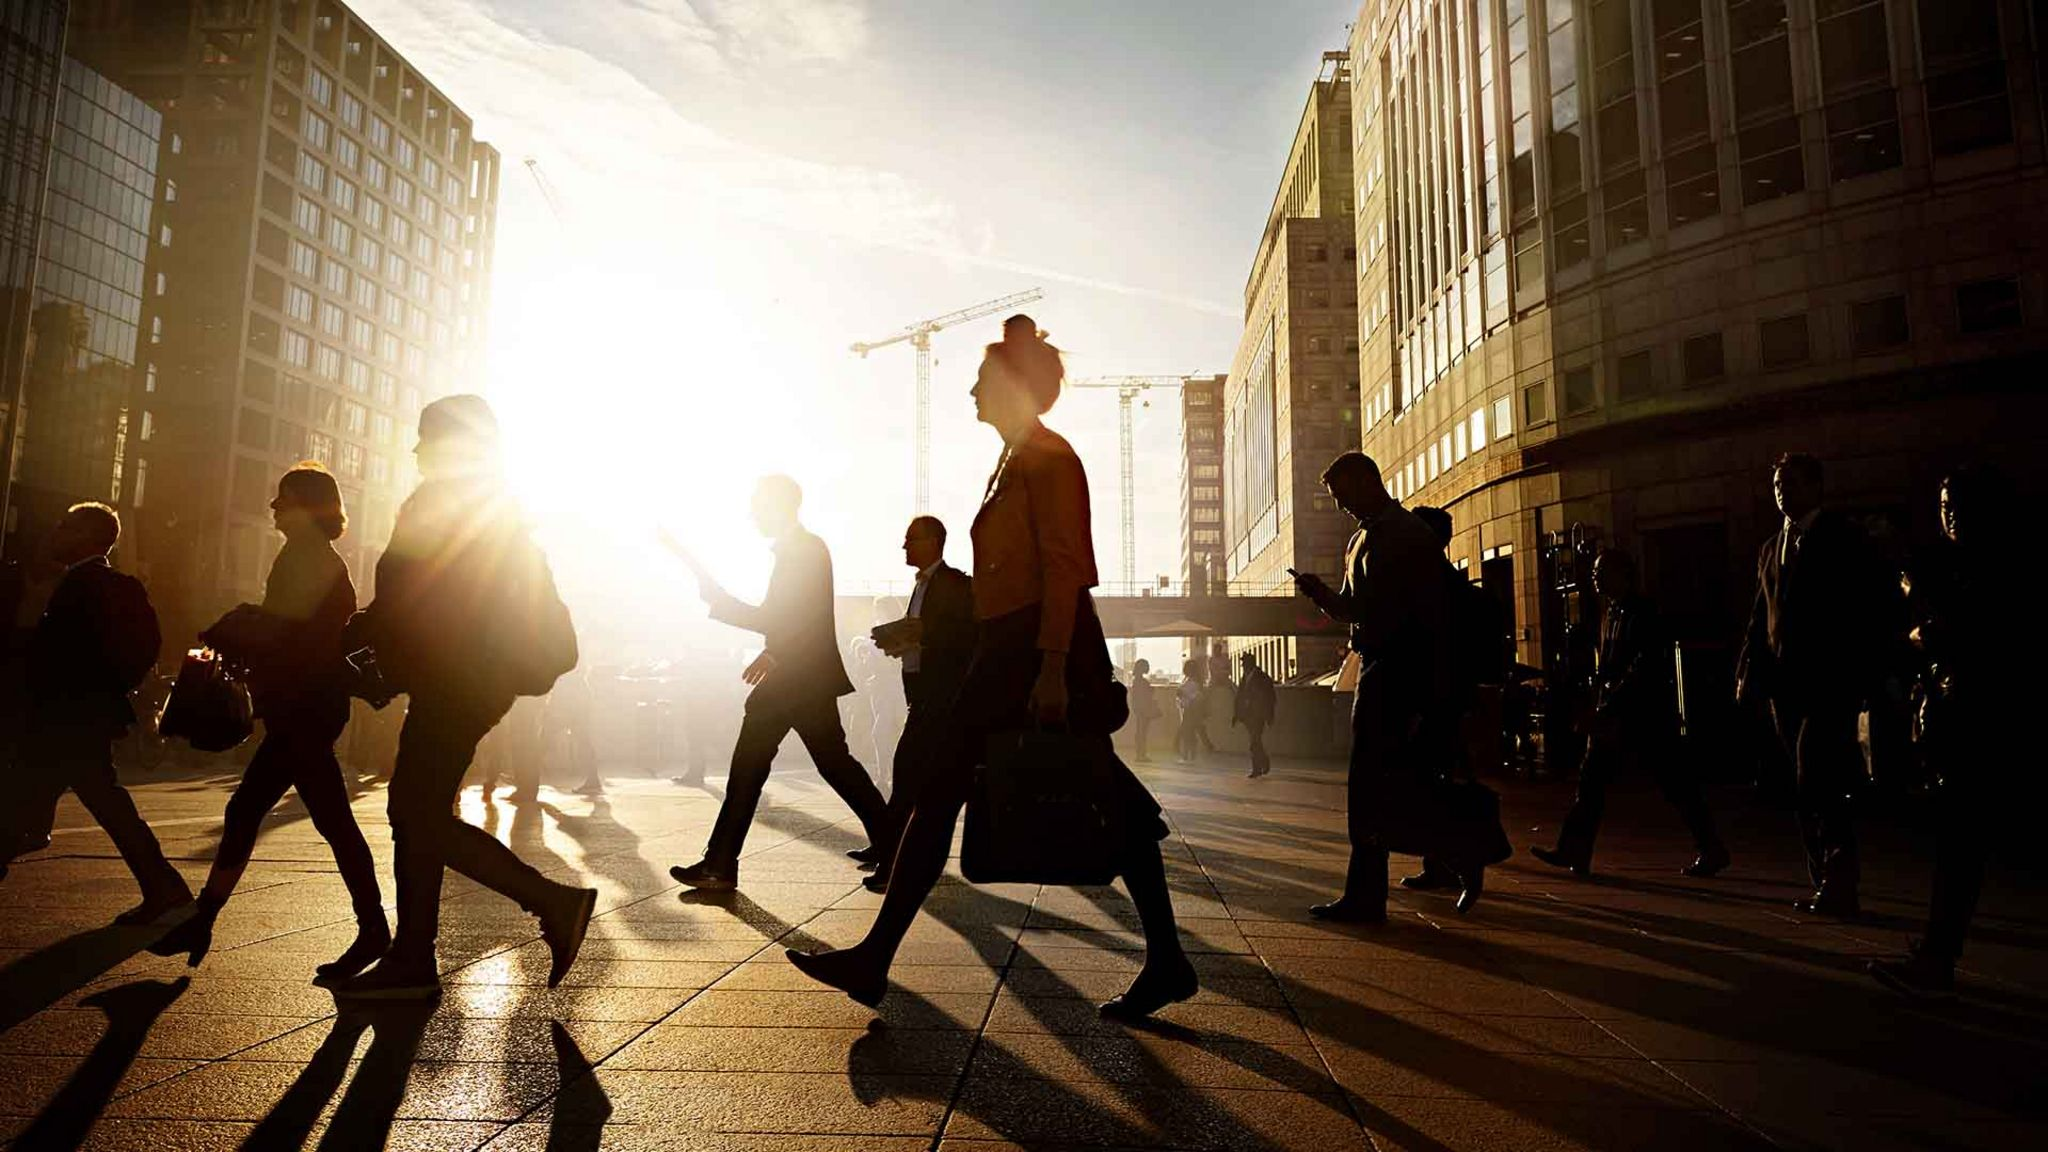 People in outline walking through city of London at sunrise